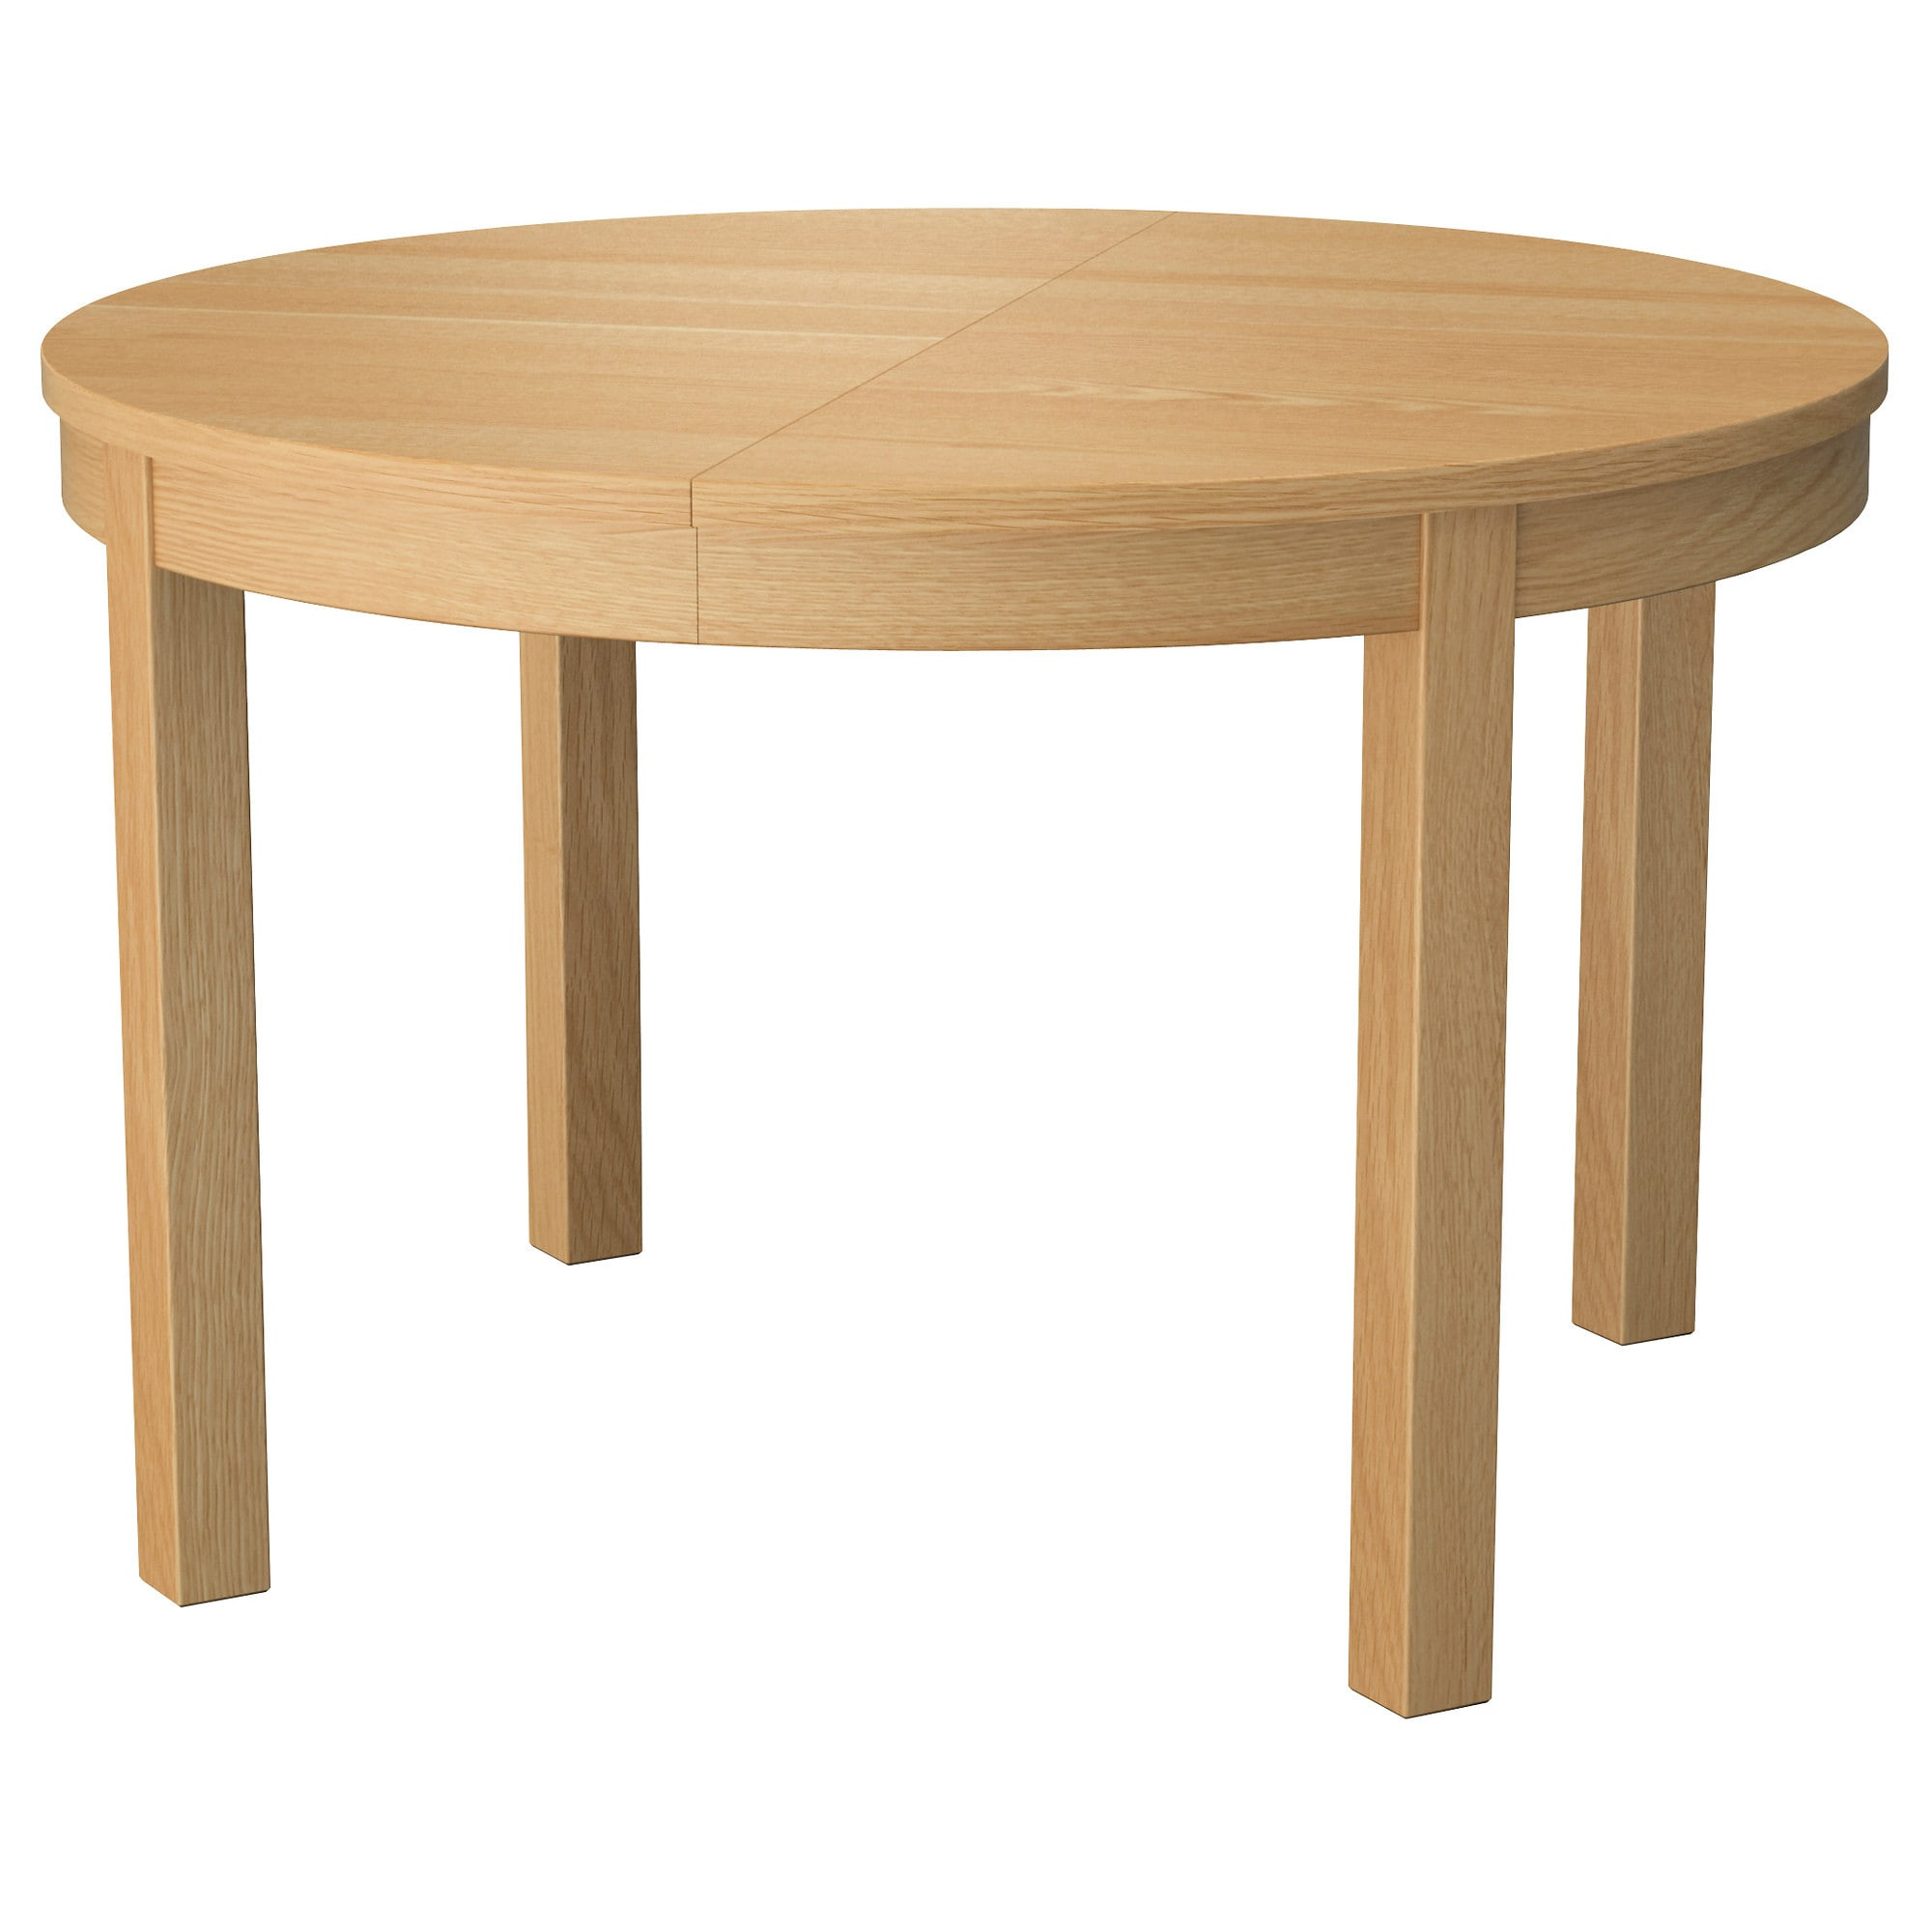 Best ideas about Ikea Dining Table . Save or Pin Extendable Dining Table Now.